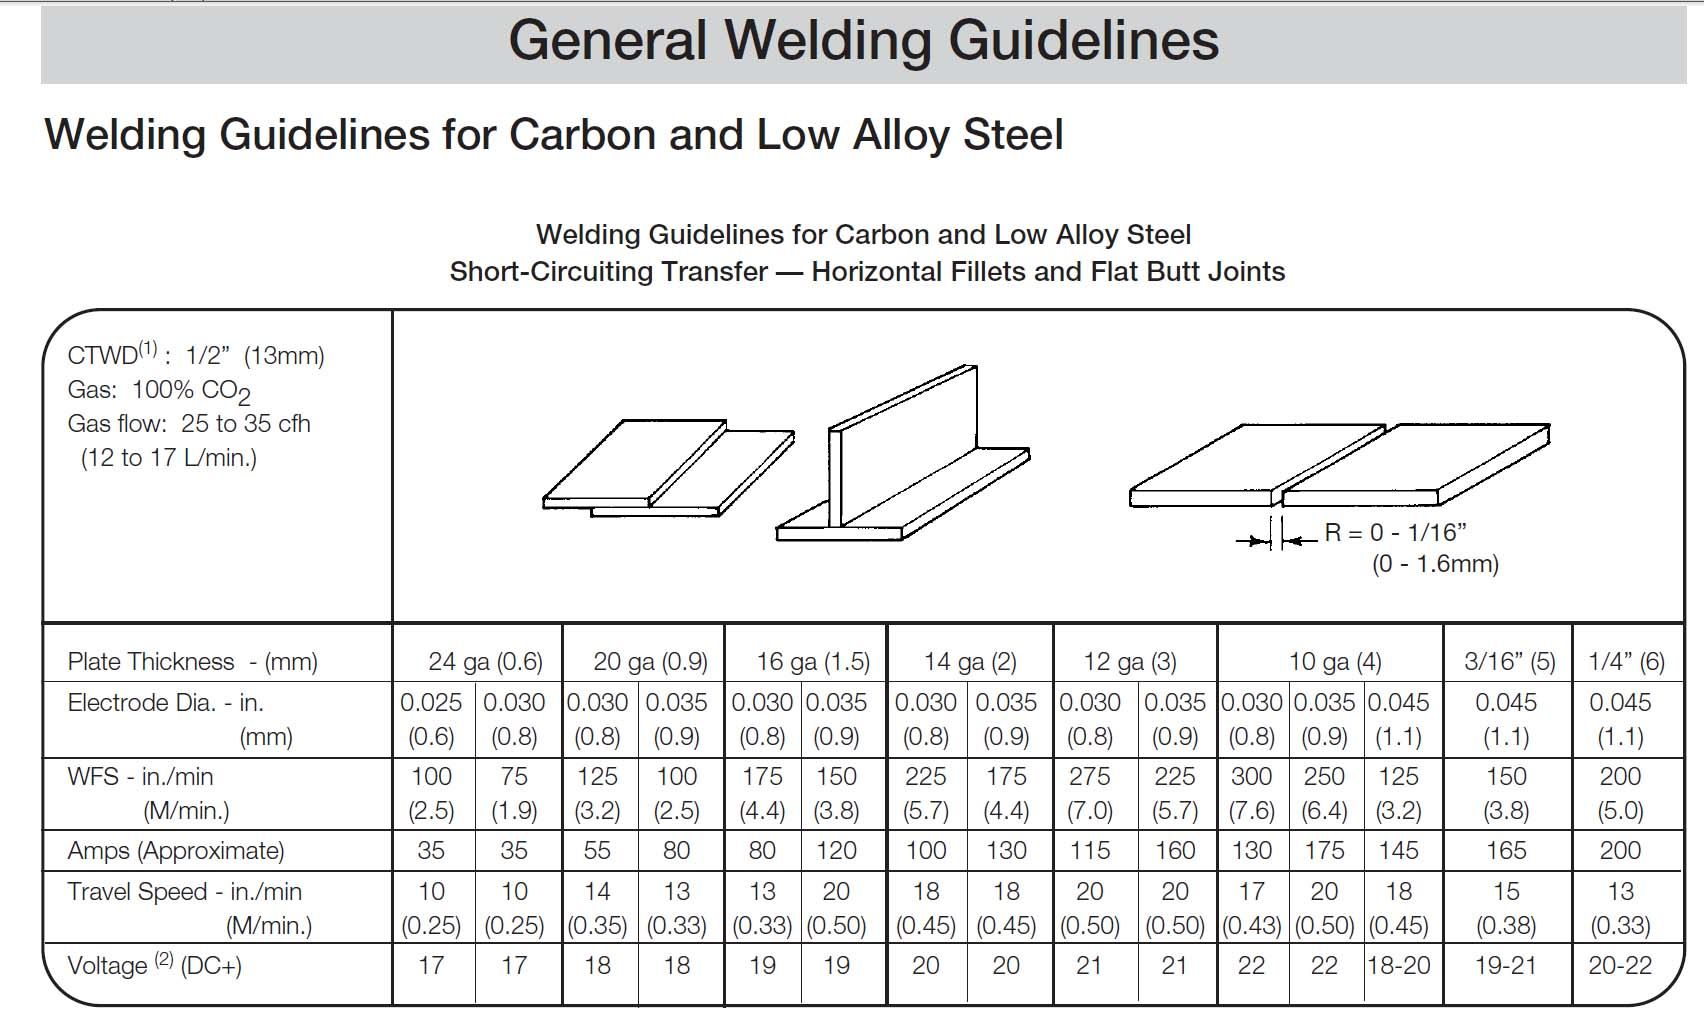 Mig Welding Wire Speed And Voltage Chart Mig Settings For Different Thickness Mild Steel Parameters Mig Welding Flux Core Welding Welding